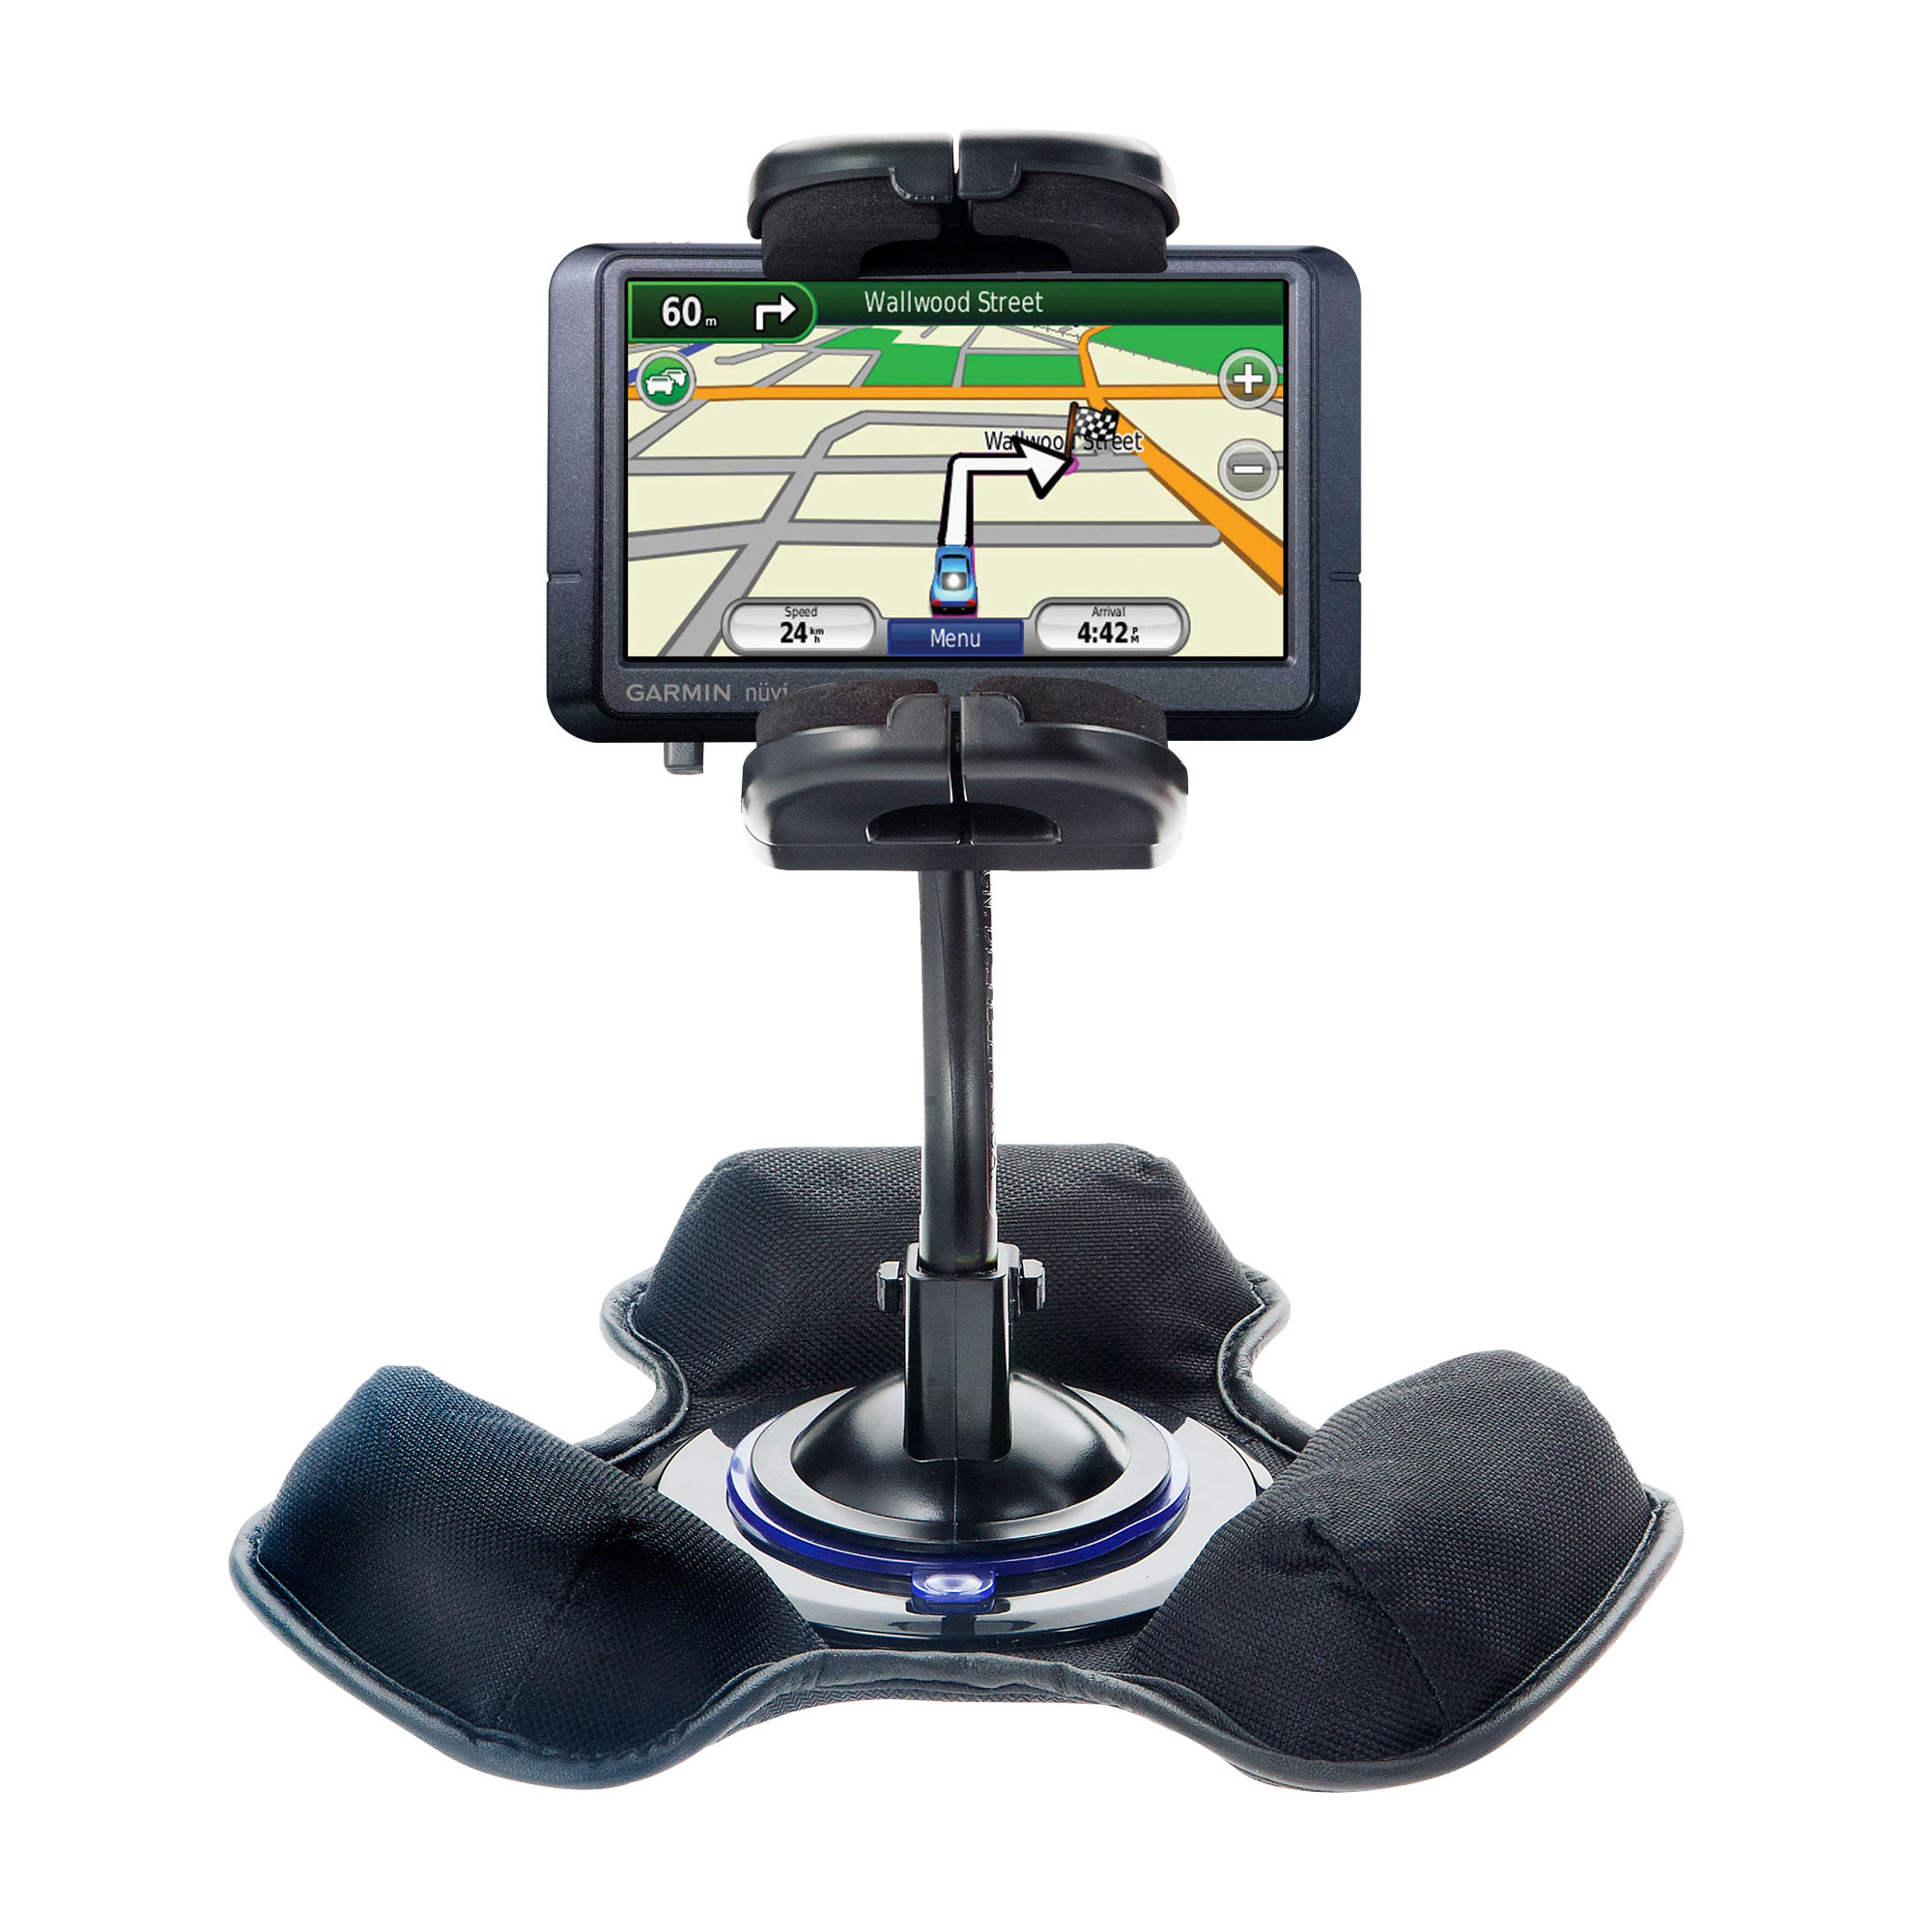 Car / Truck Vehicle Holder Mounting System for Garmin Nuvi 255W 255WT 255 Includes Unique Flexible Windshield Suction and Universal Dashboard Mount Options